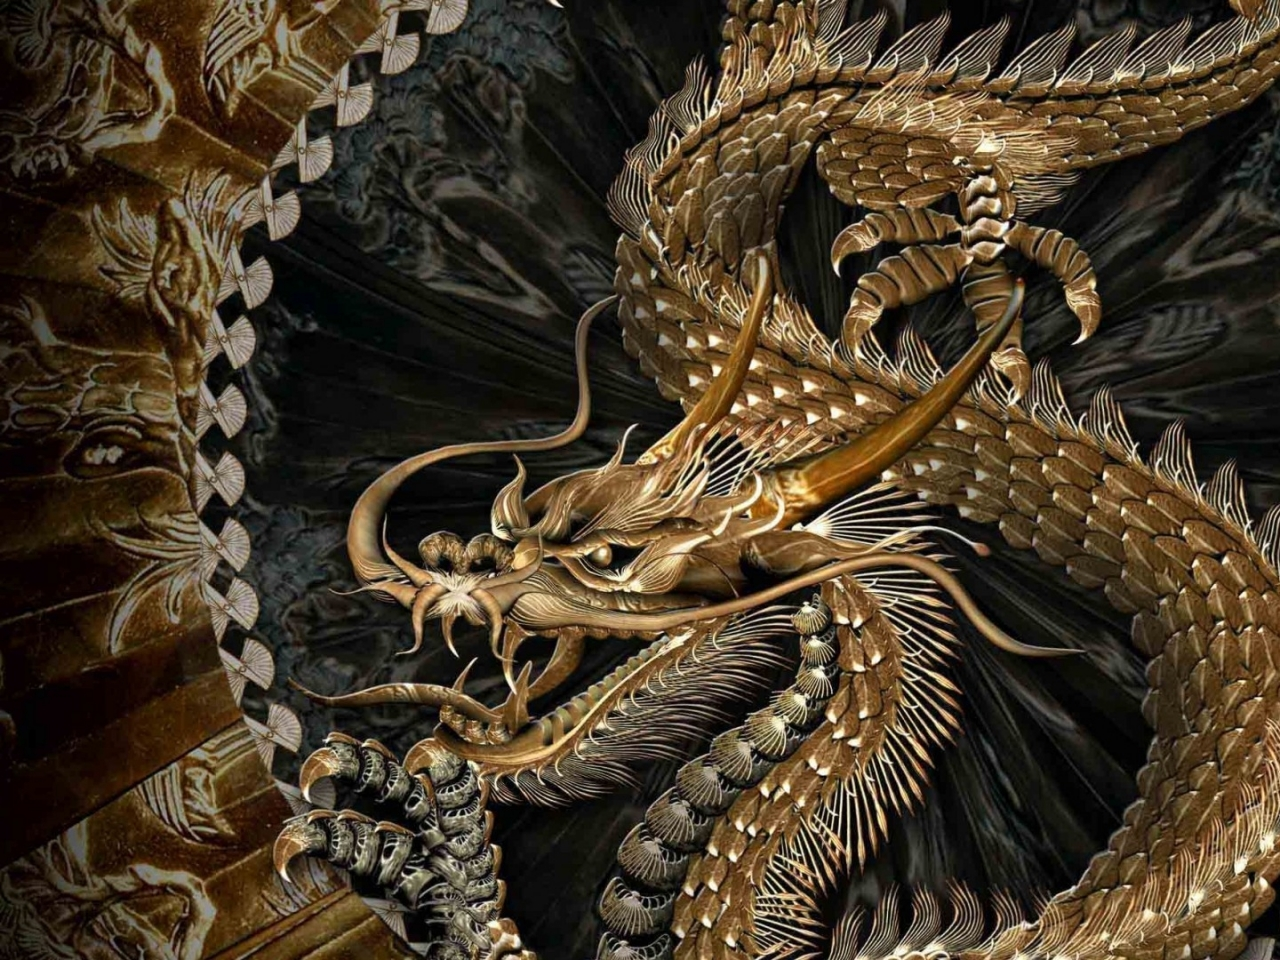 chinese dragon 1920x1080 wallpaper Wallpaper Wallpapers 1280x960